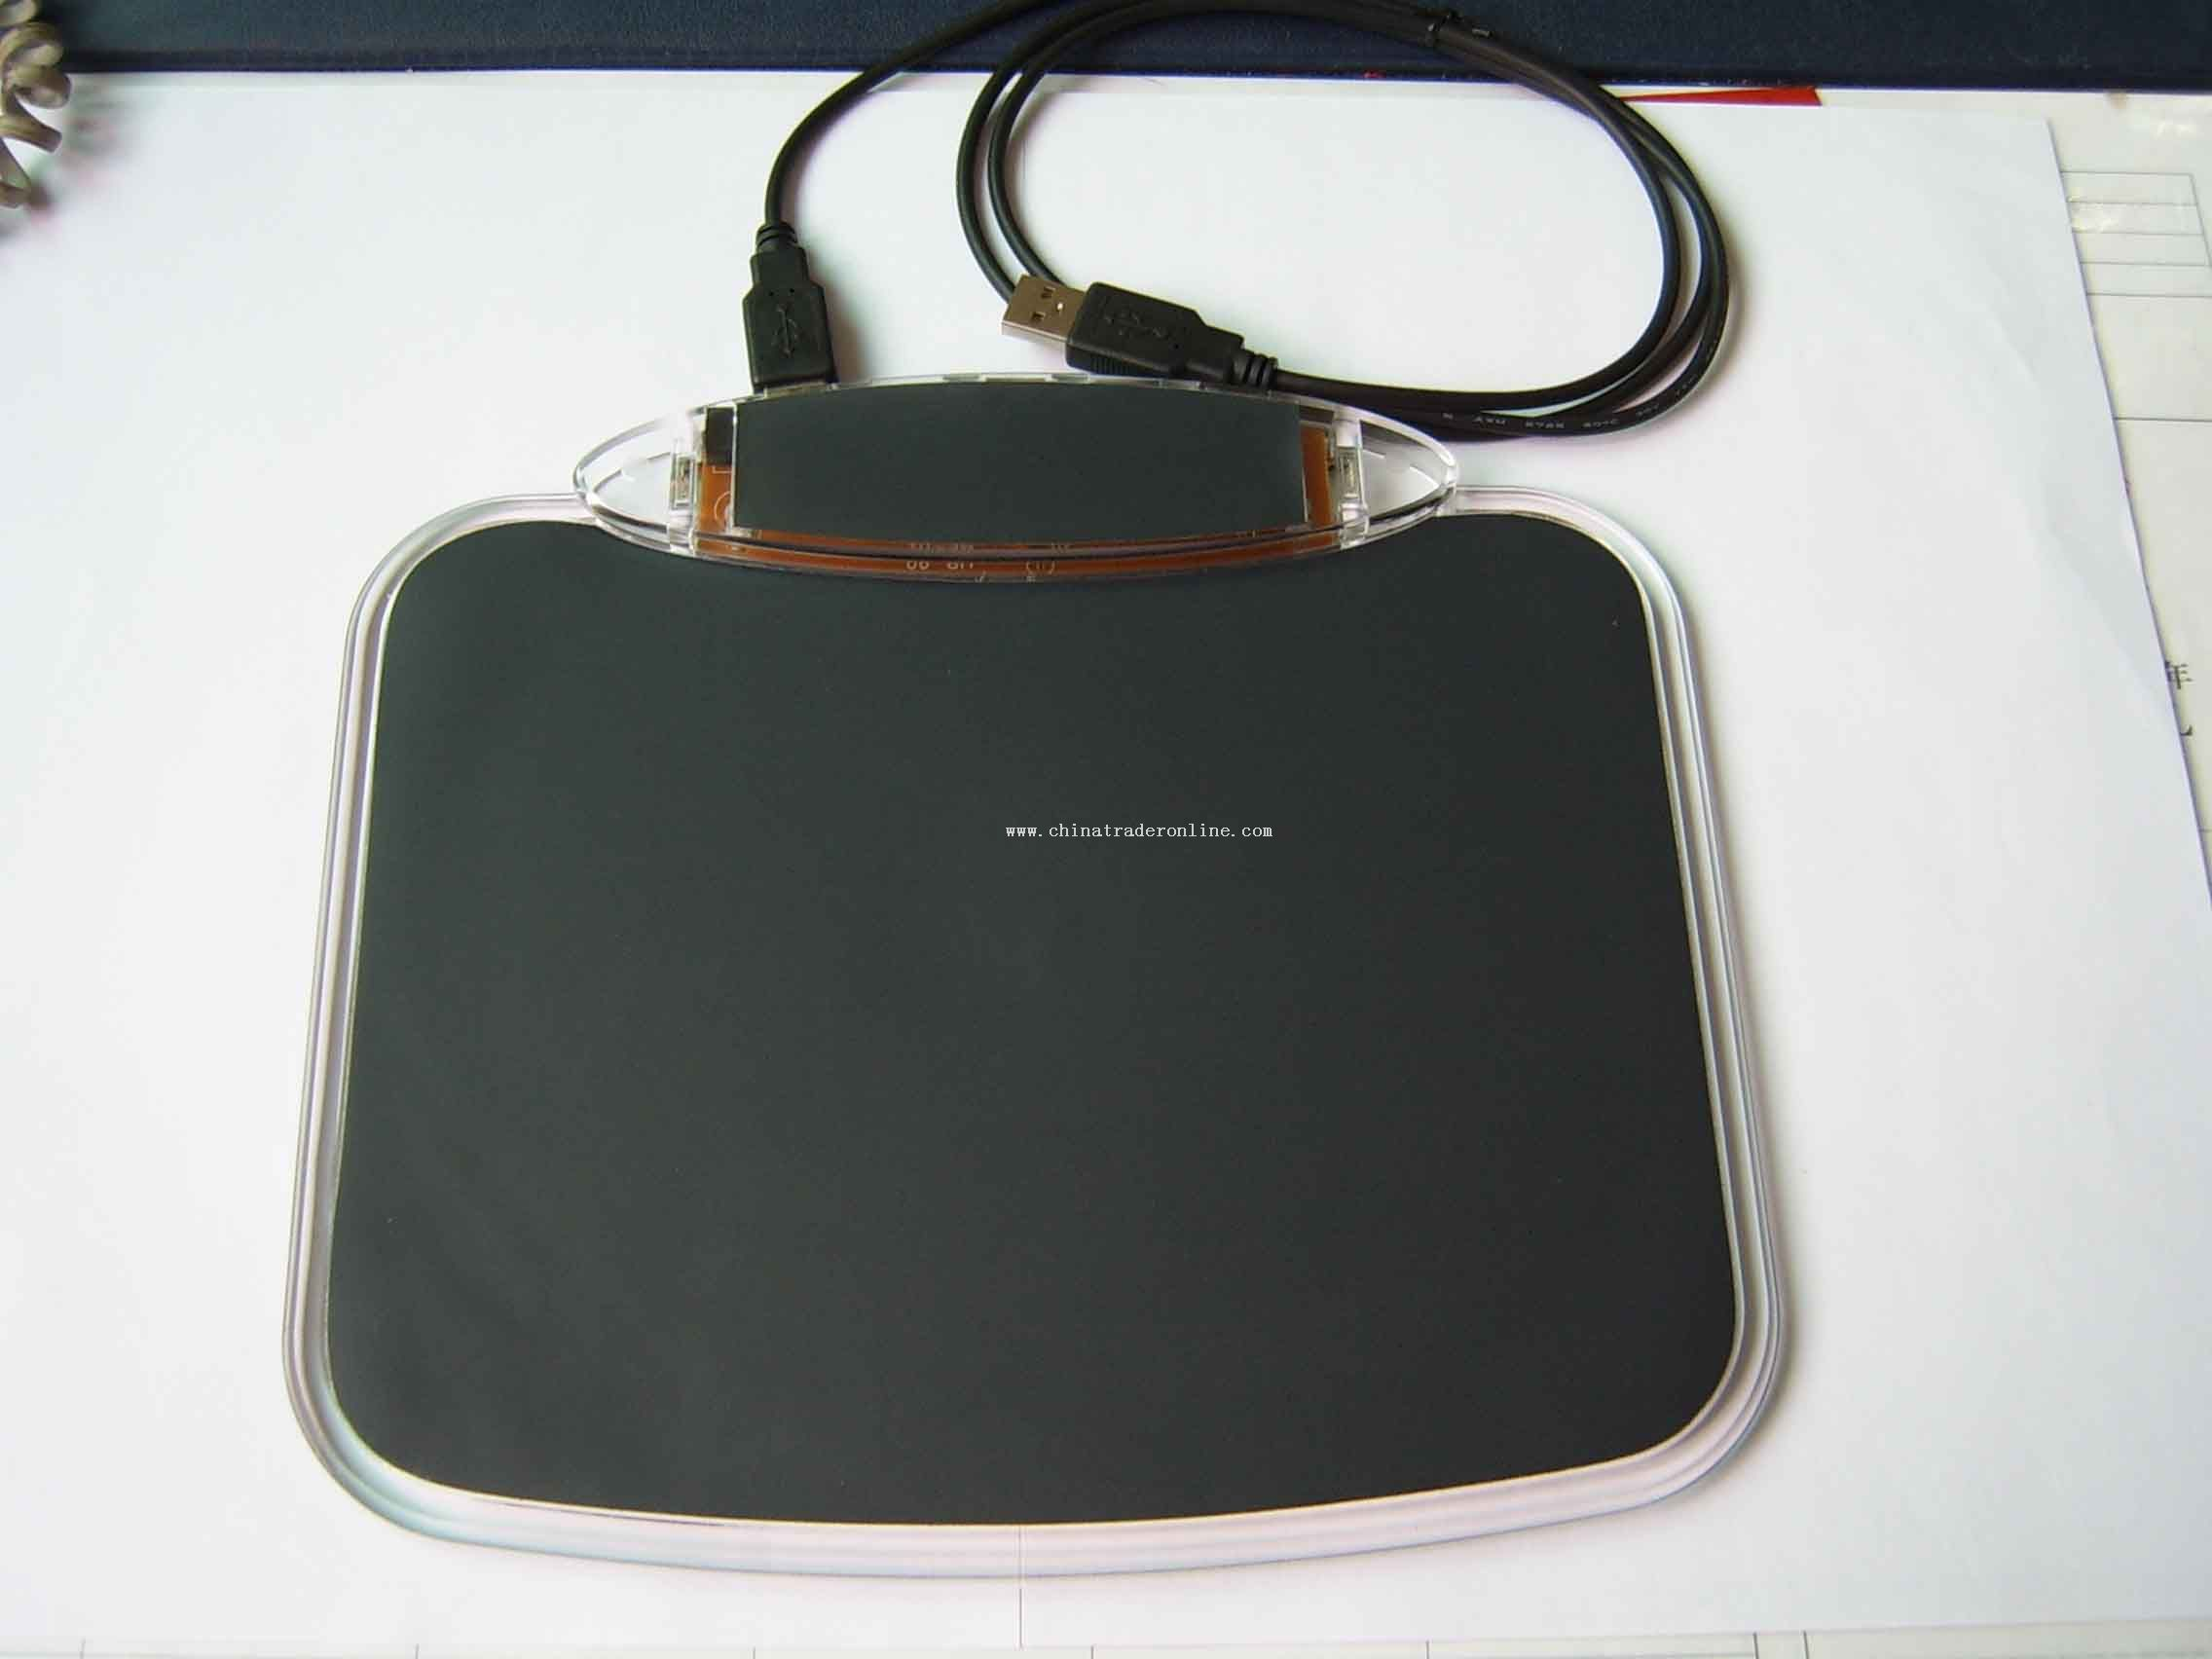 USB HUB Mousepad from China